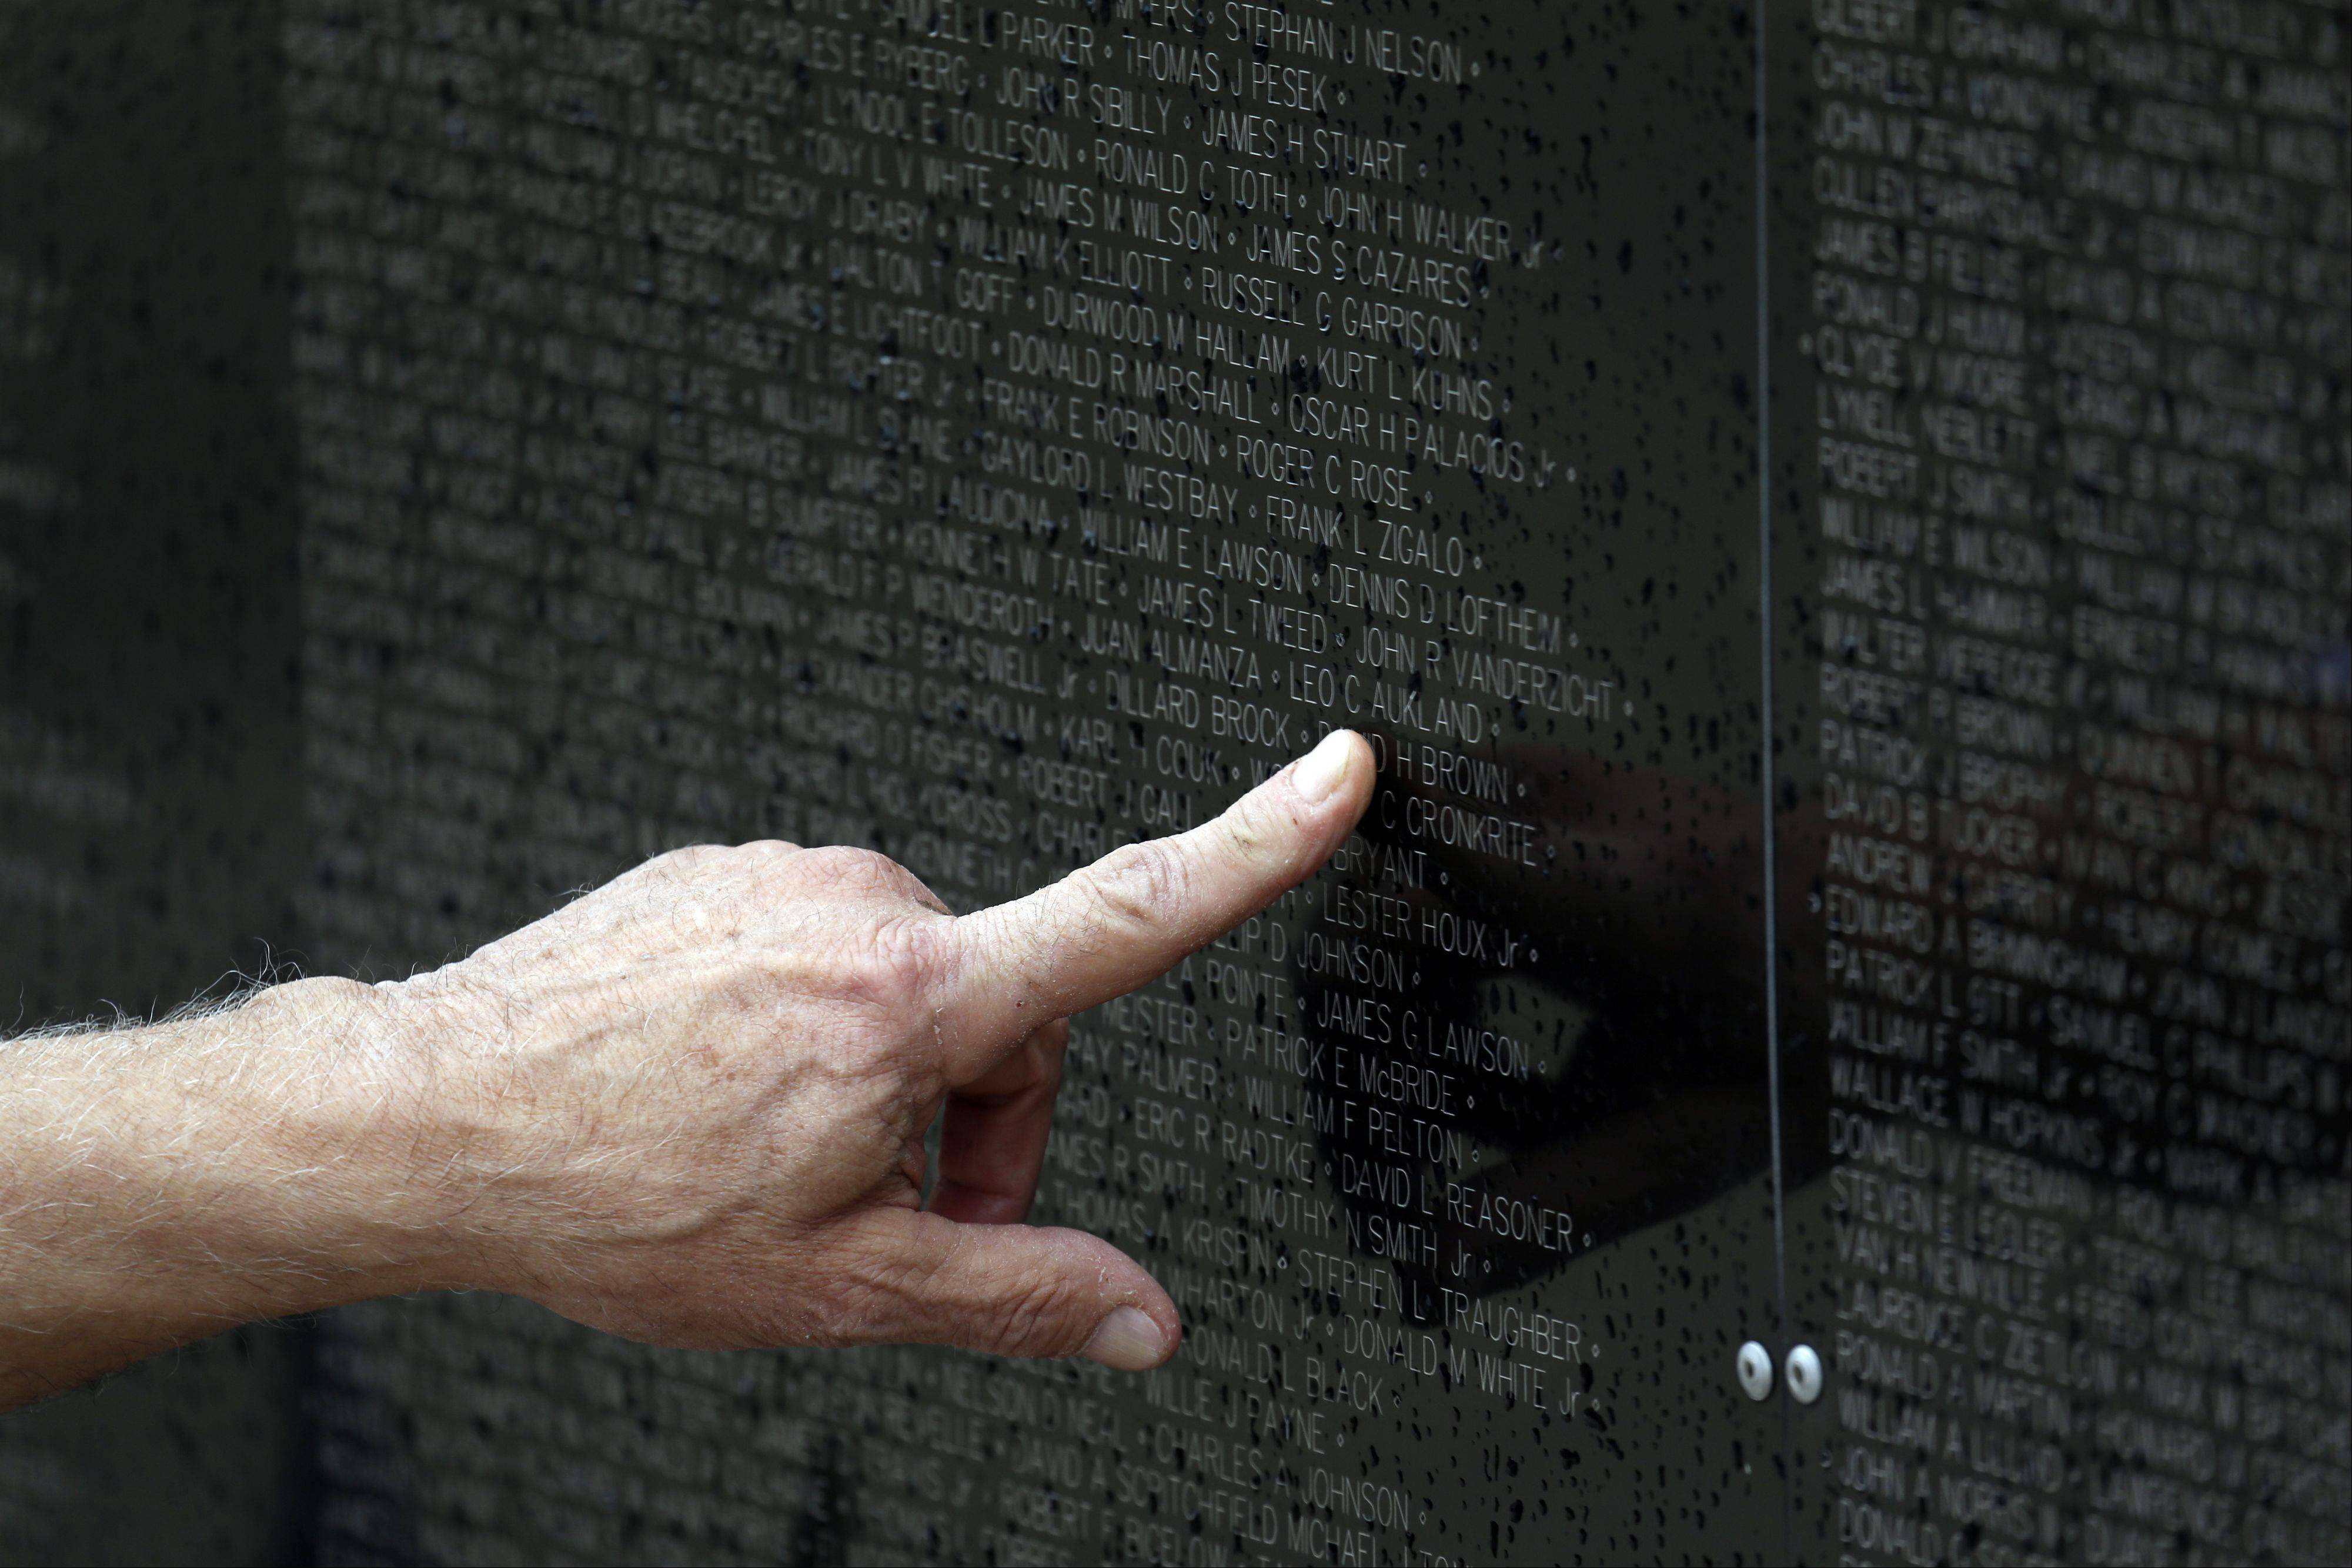 The Vietnam Wall replica contains the names of 58,249 servicemen and women who died in Vietnam.